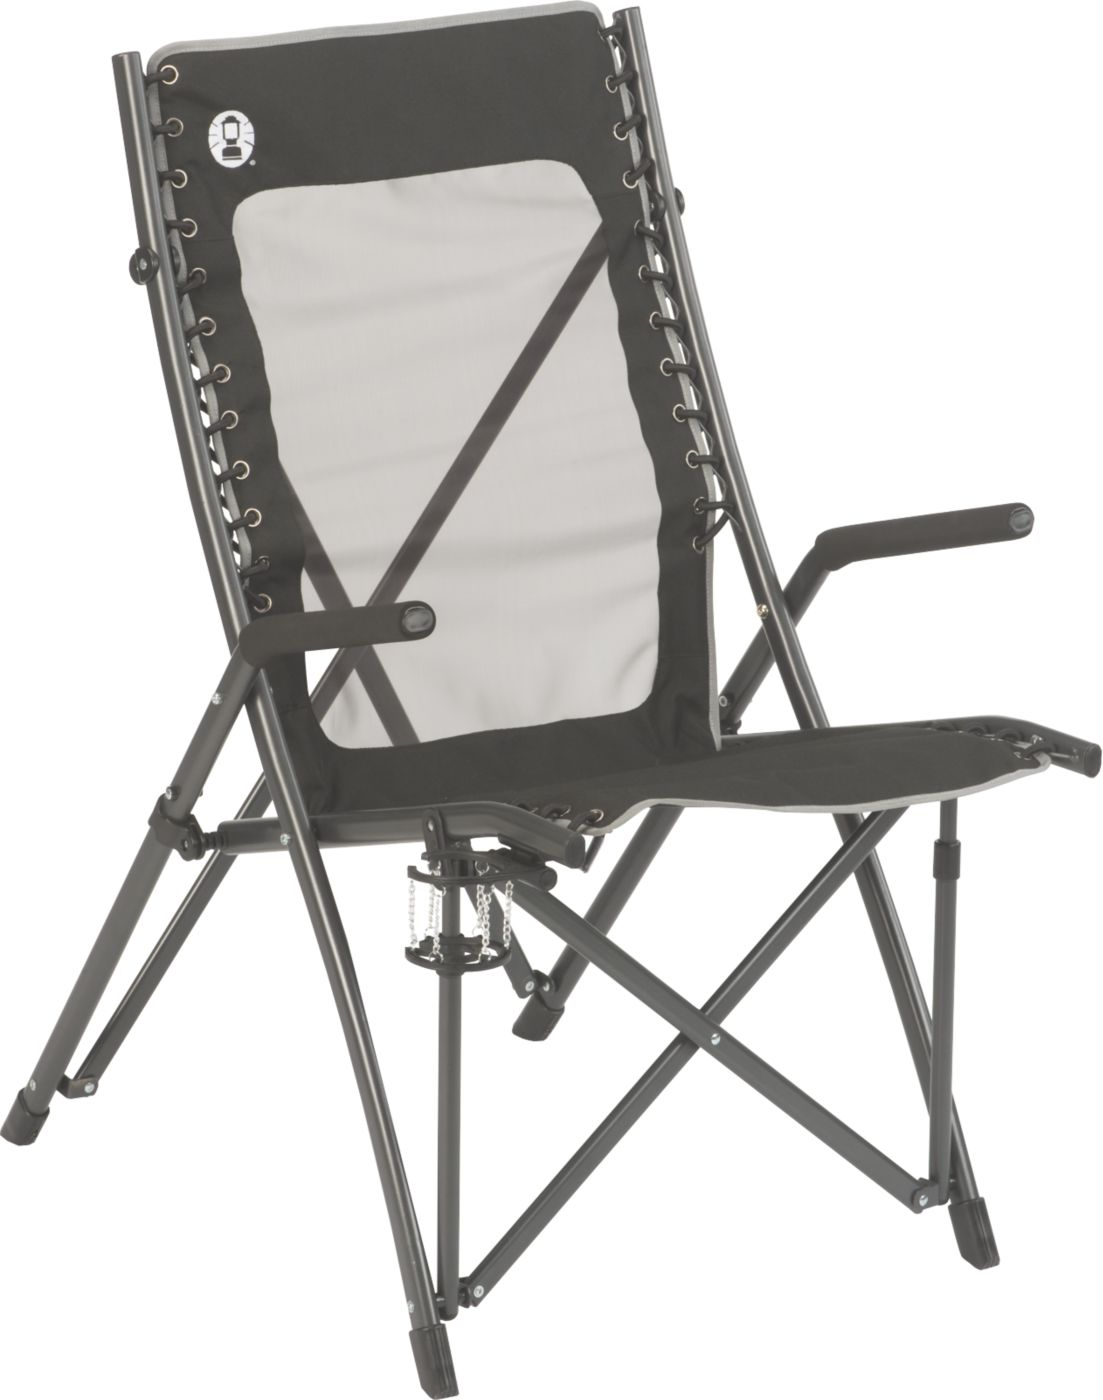 folding chair parts manufacturer modern wood camping chairs coleman comfortsmart suspension